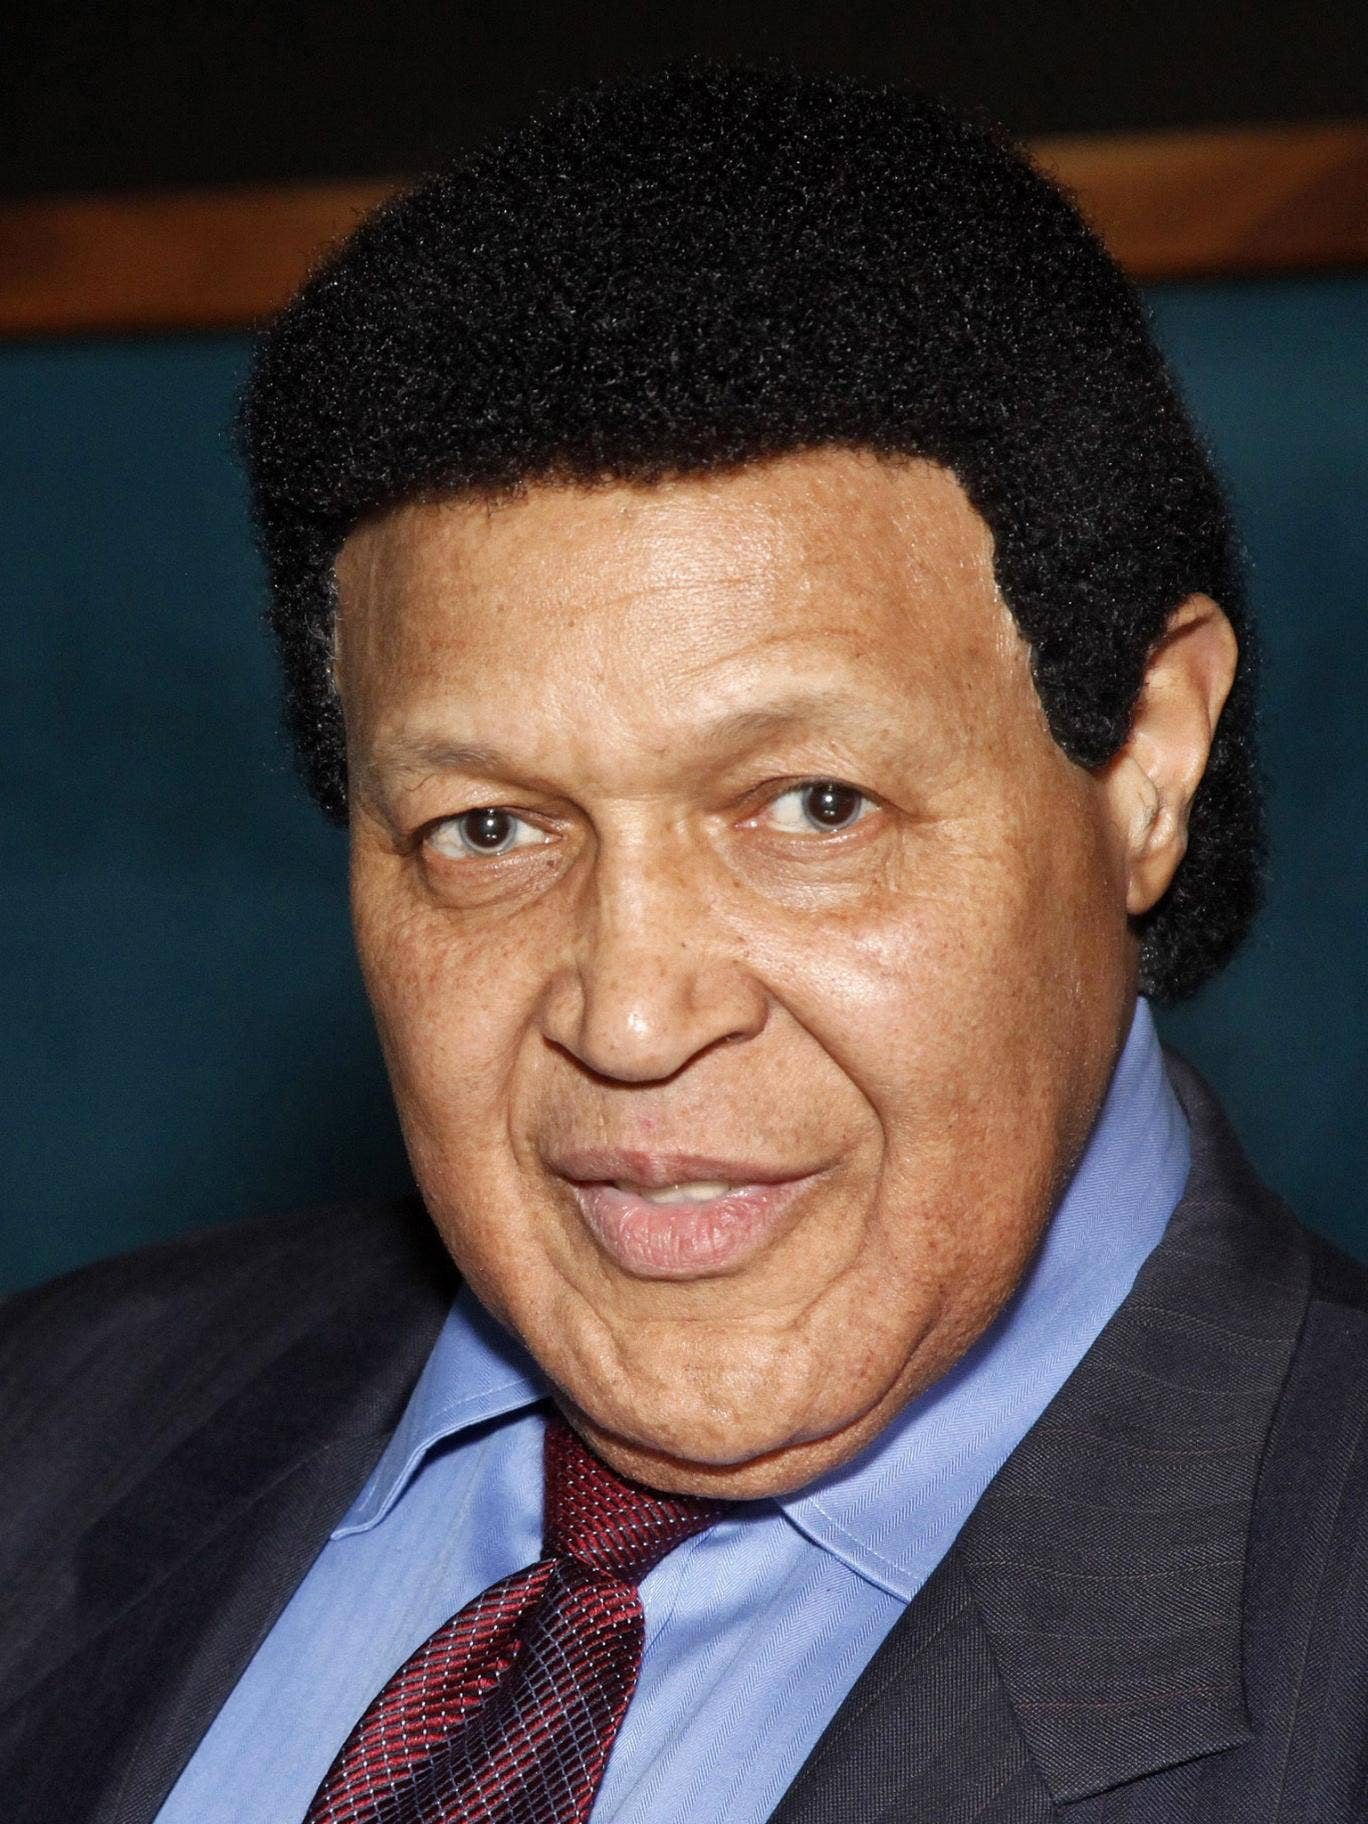 Chubby Checker, pictured here in 2012, shot to prominence with the song 'The Twist' in 1961